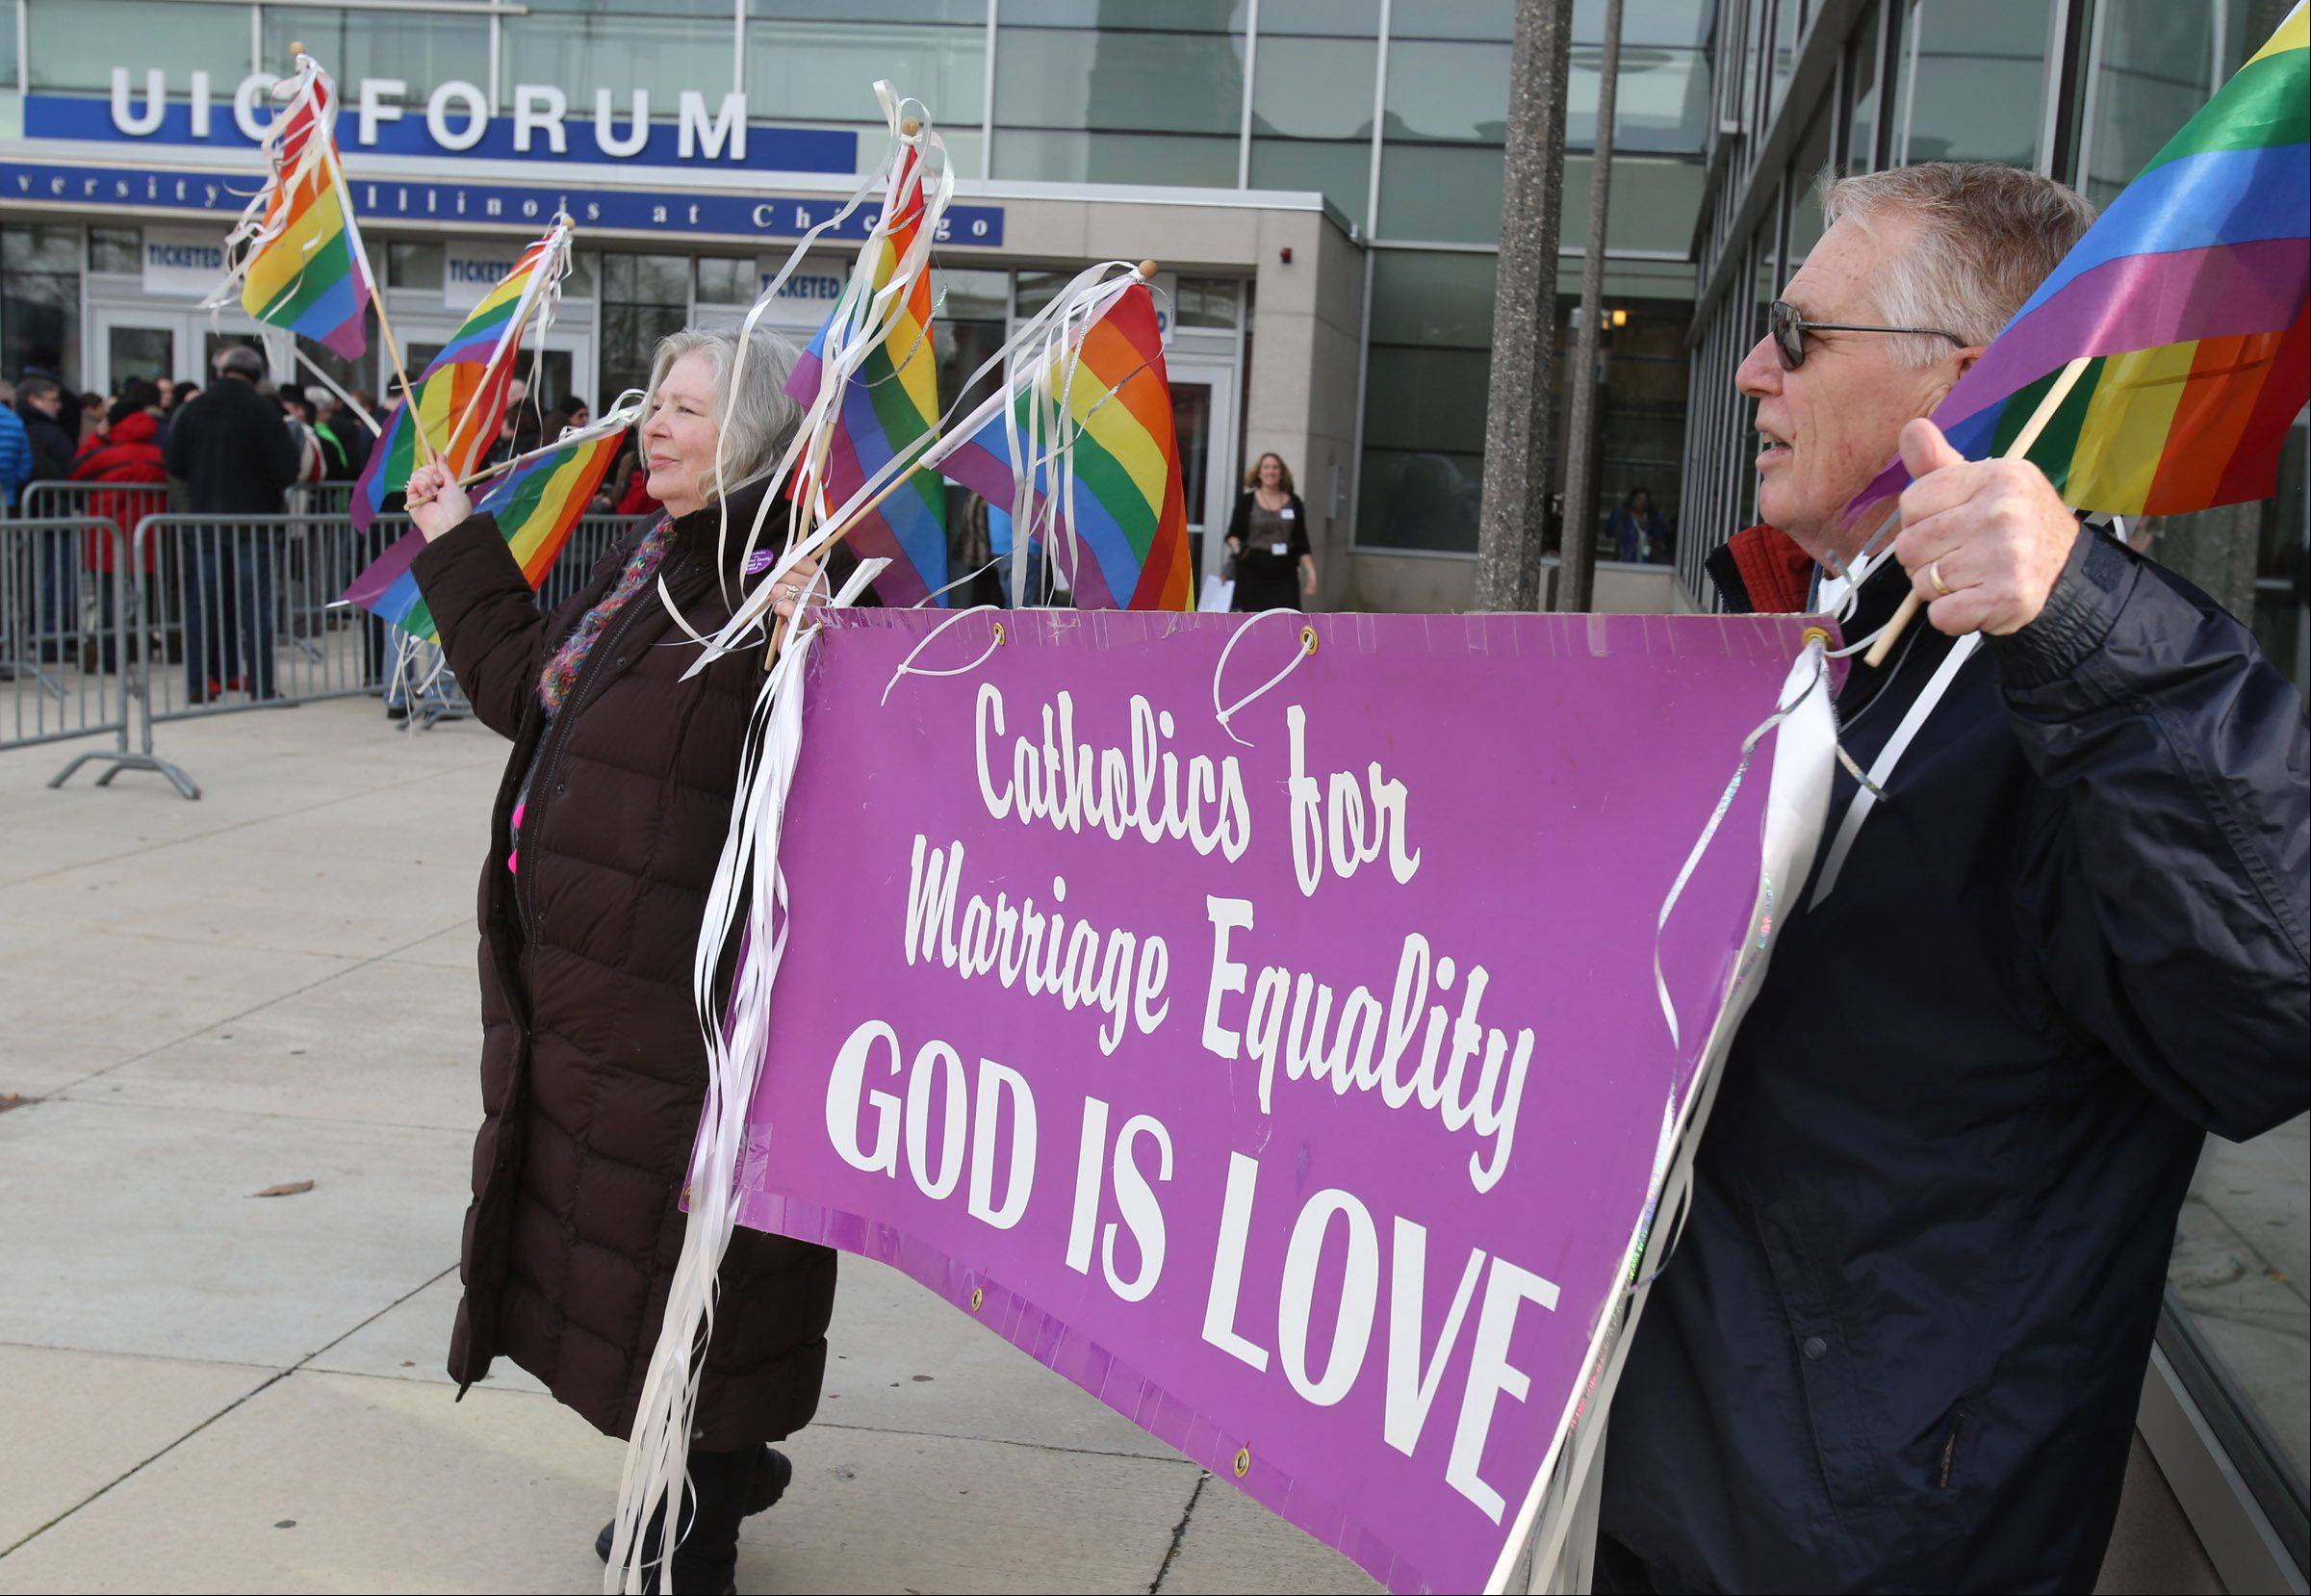 Barbara Marian and Jerry Powers, both of Harvard and with Catholics for Marriage Equality, participate outside of the University of Illinois Forum.